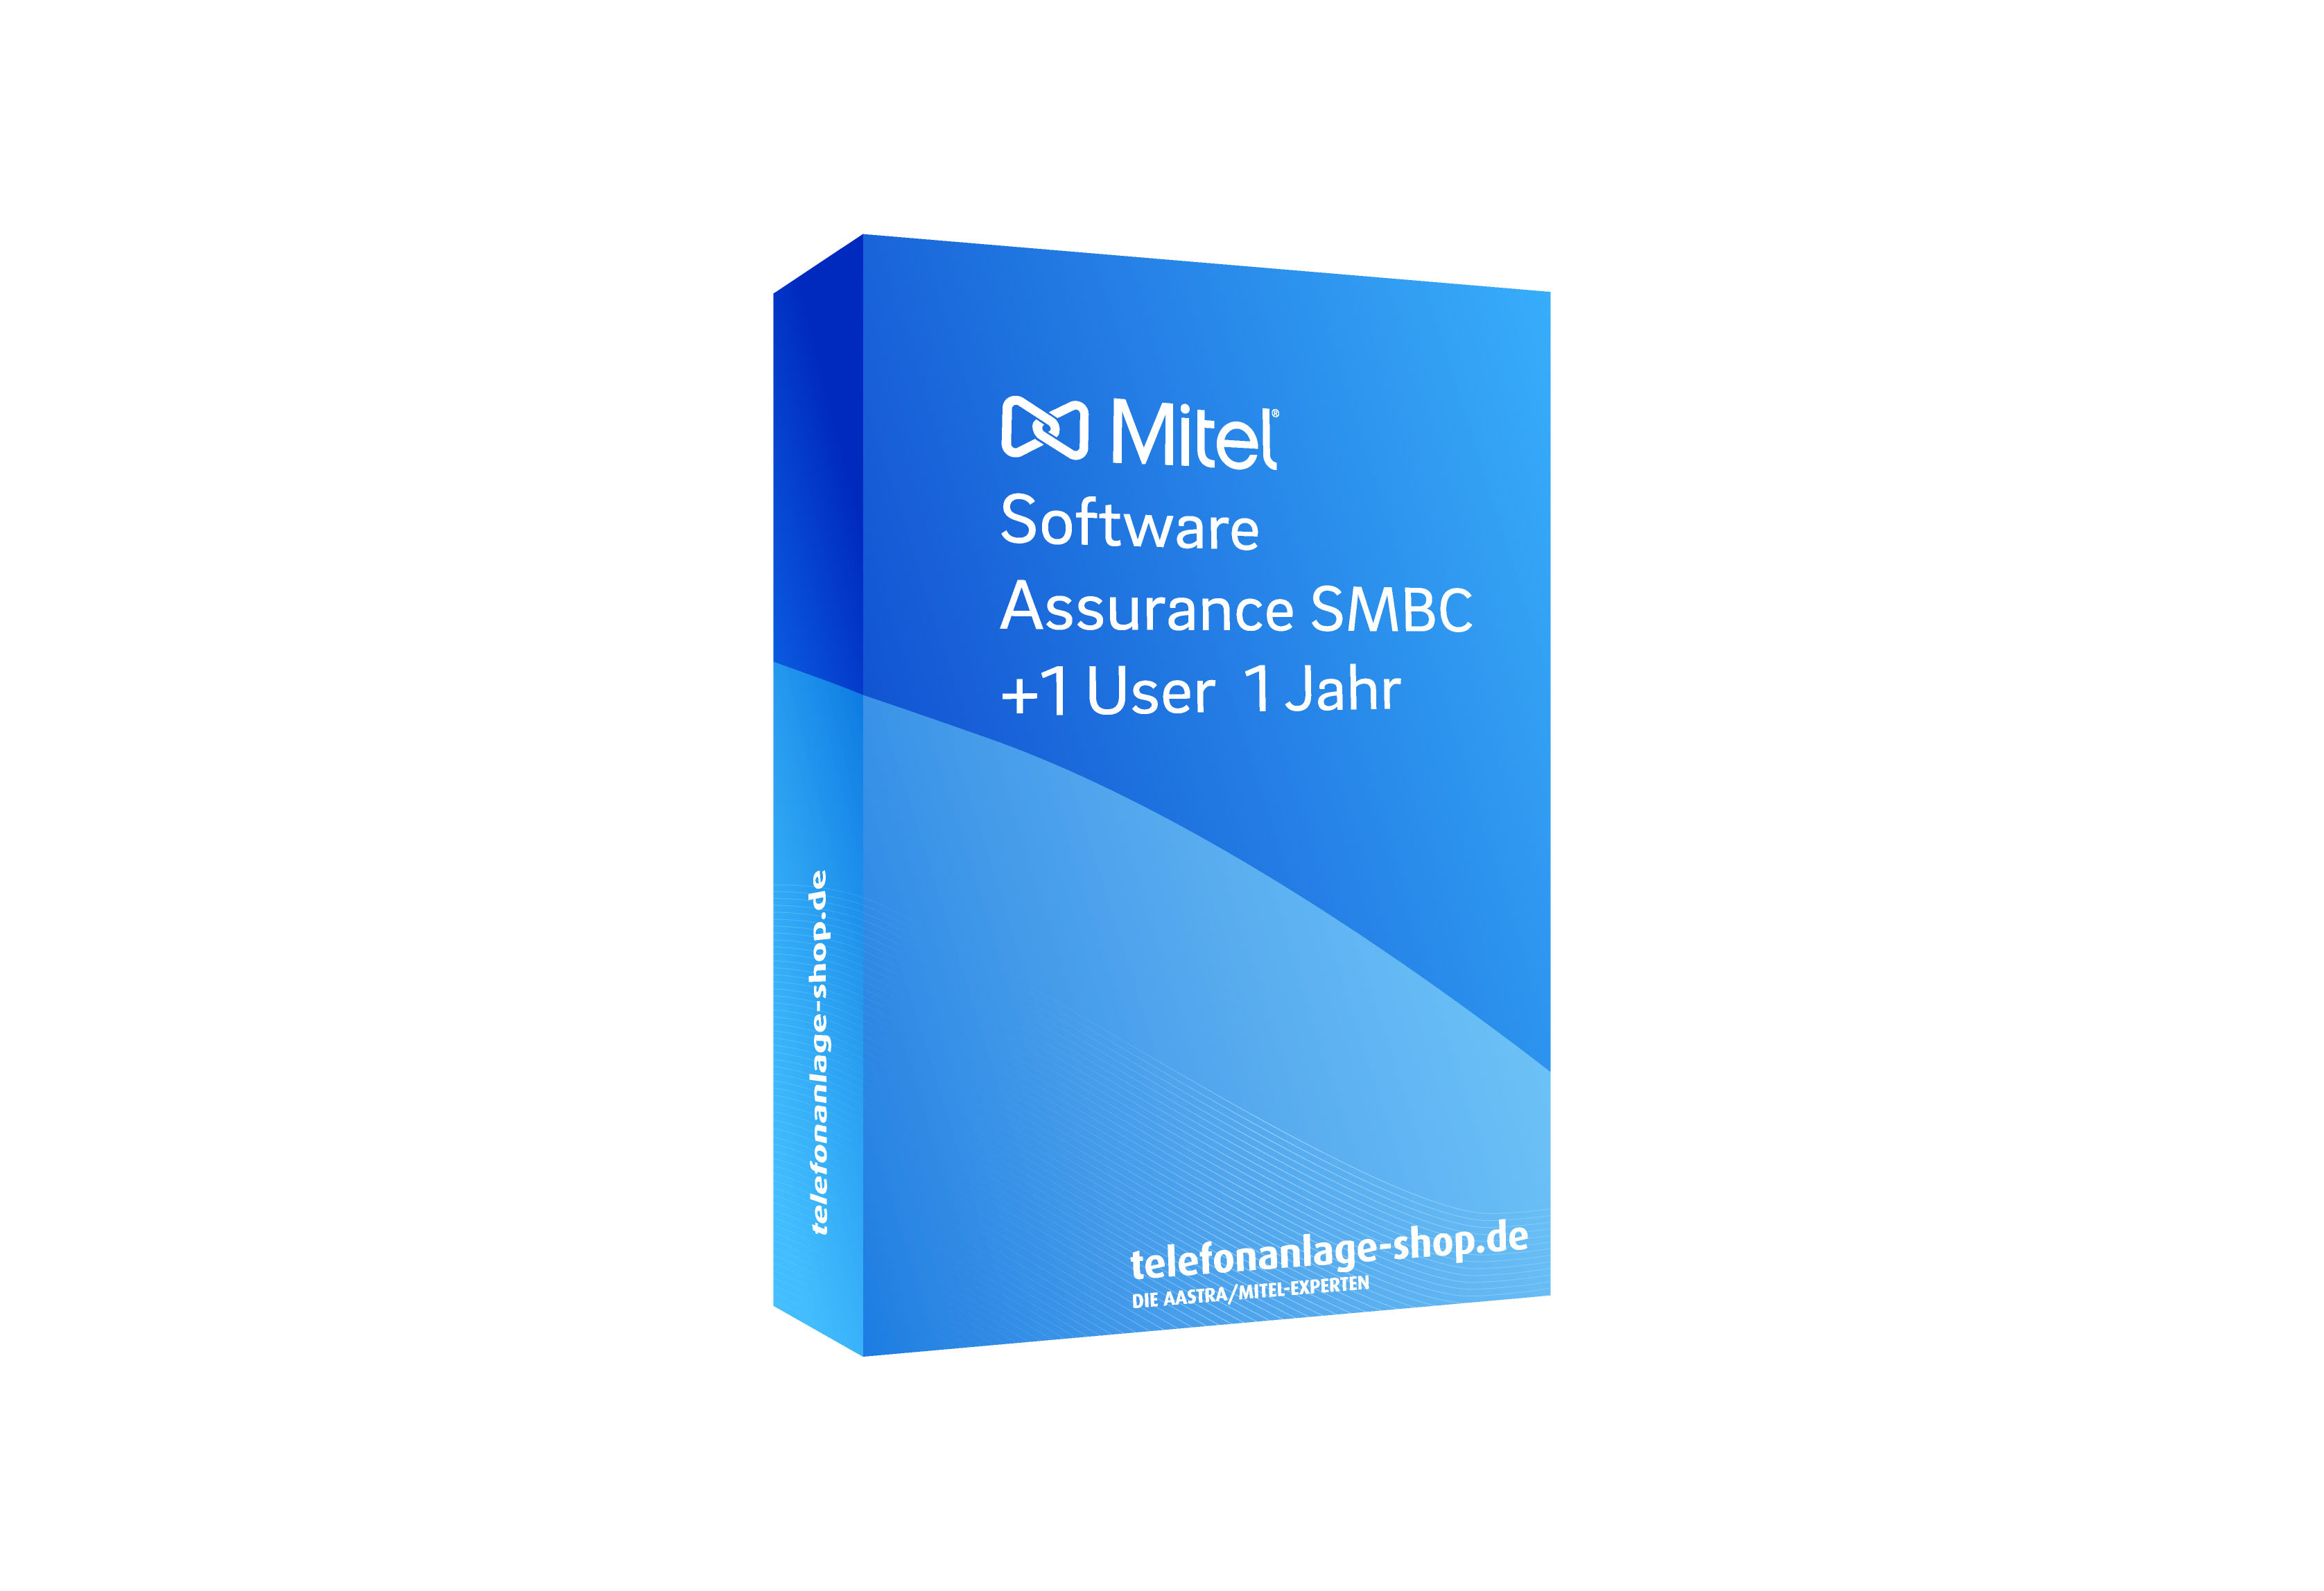 Vollansicht - Mitel Software Assurance SMBC +1User 1Jahr